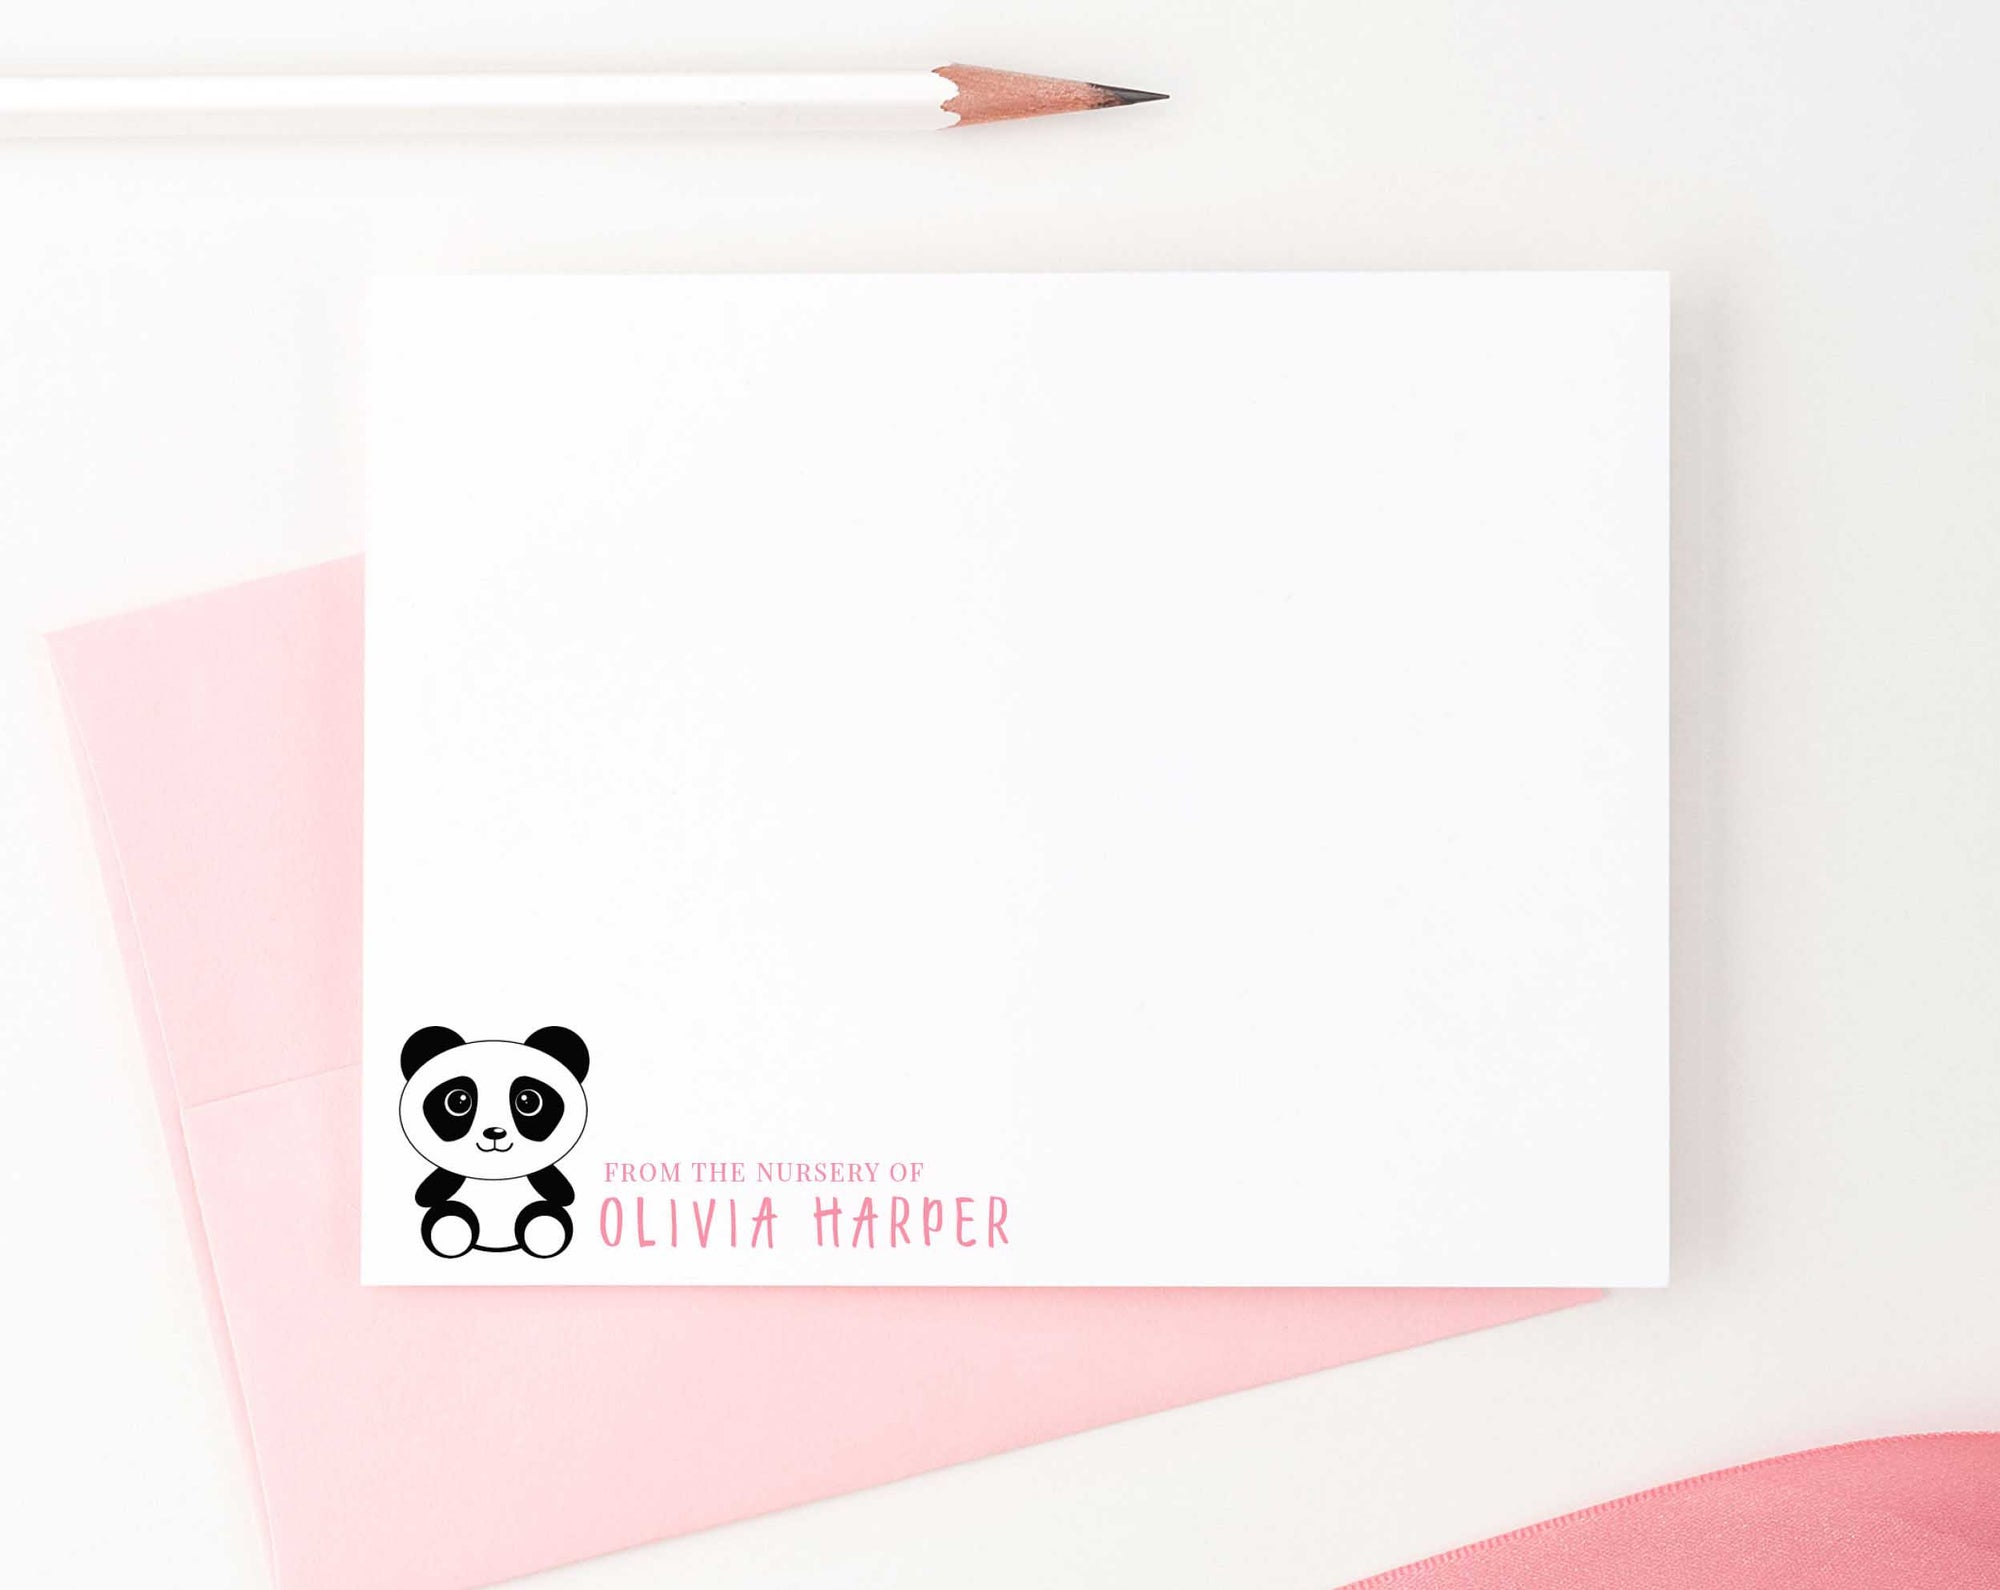 KS109 from the nursery of panda note cards personalized for girls and boys kids baby stationery notecard animal cute